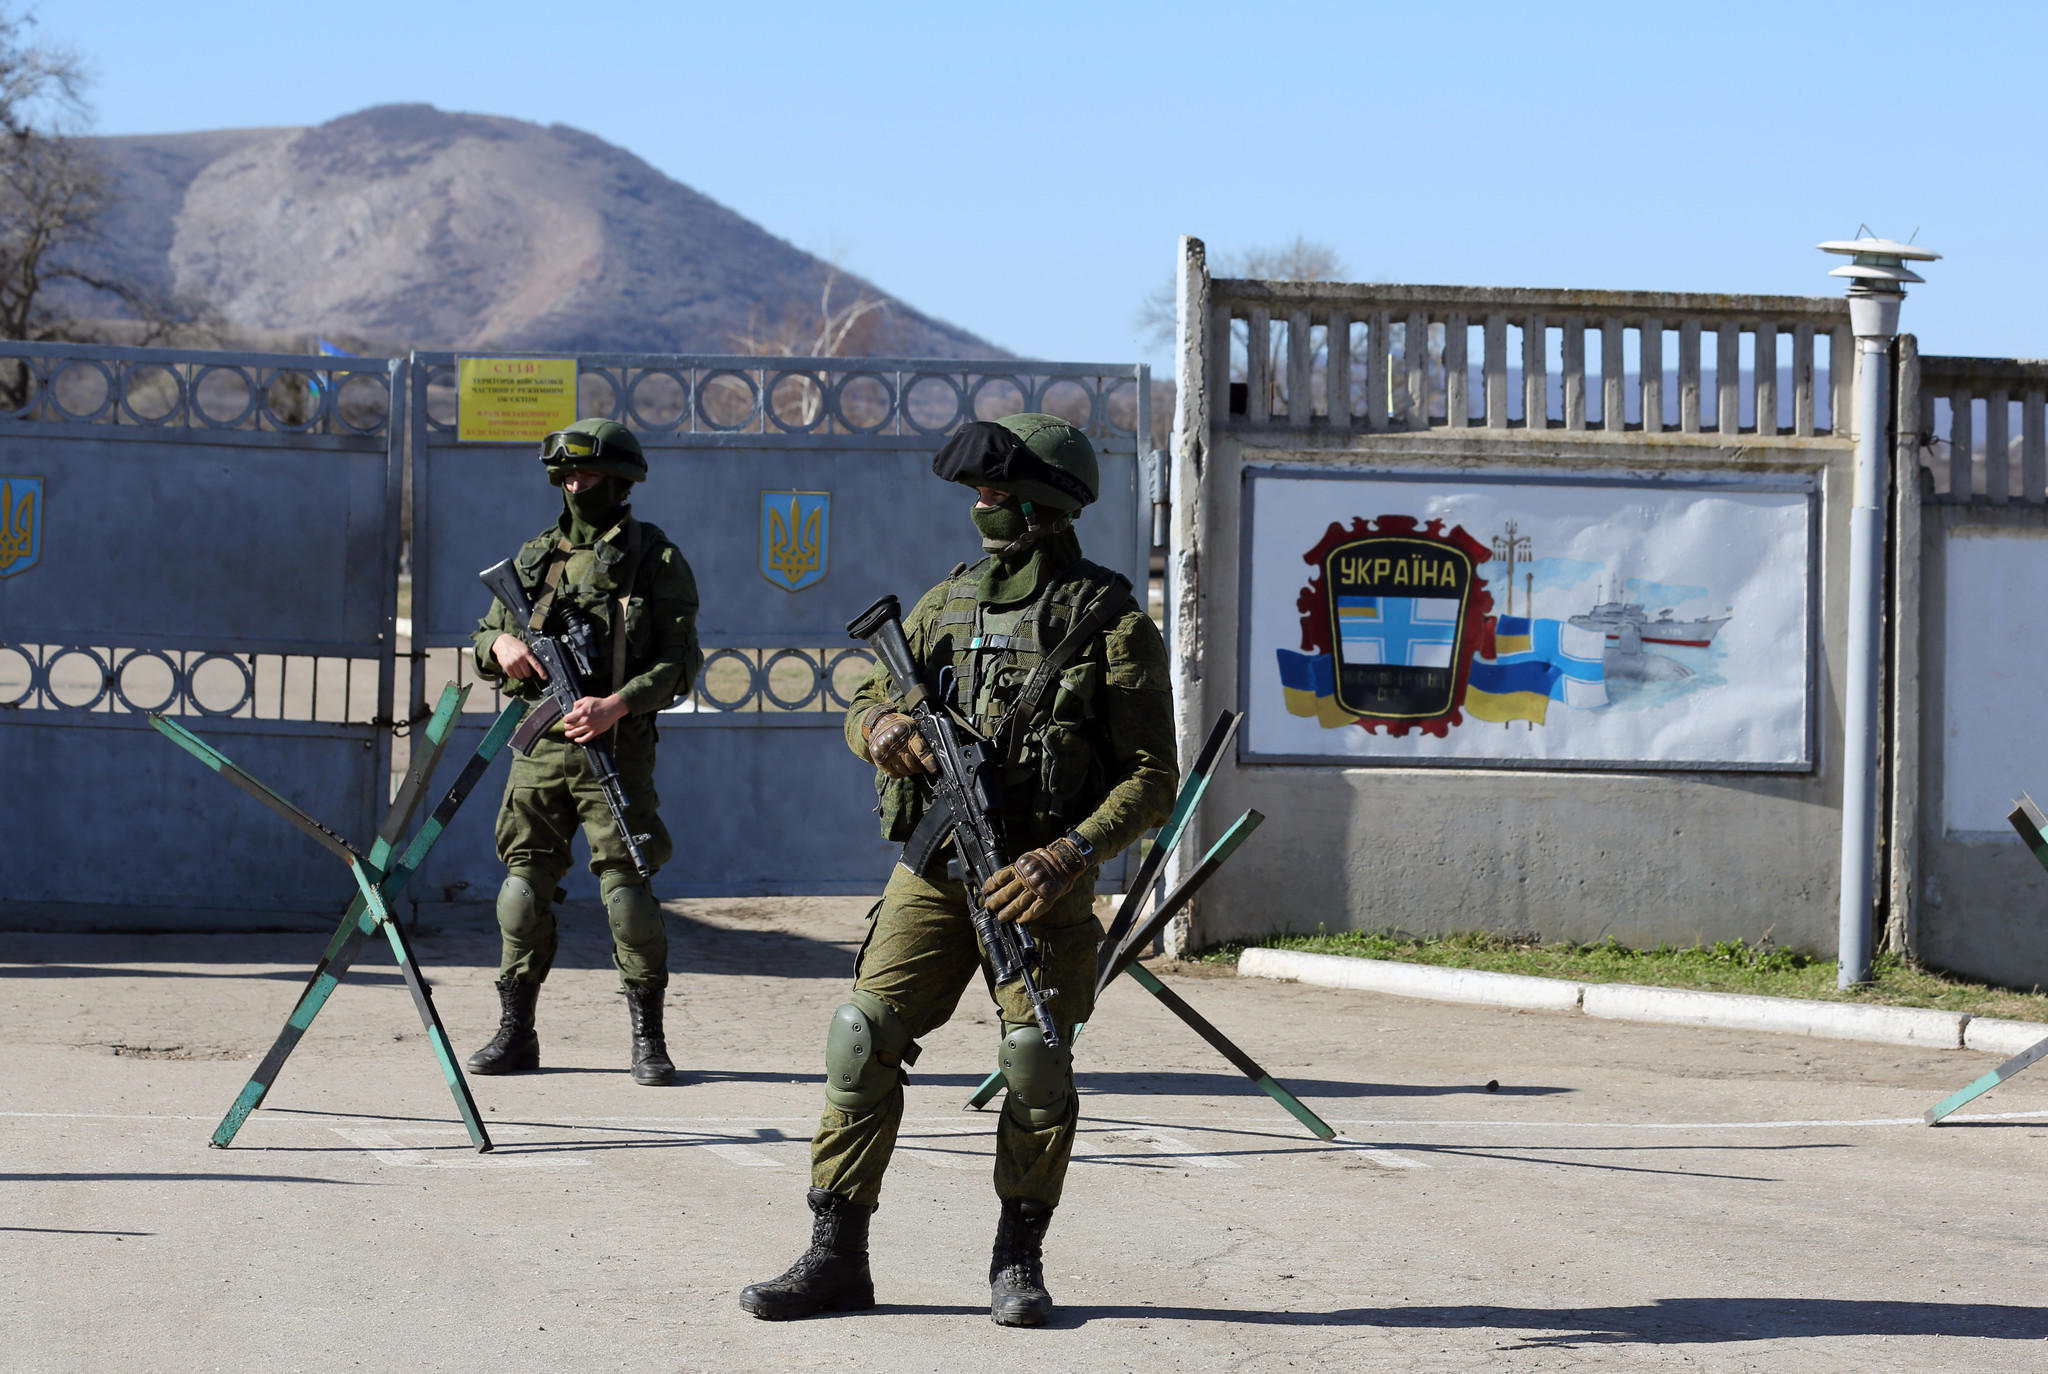 Russian soldiers stand guard in front of a Ukrainian military base in the Crimean peninsula.